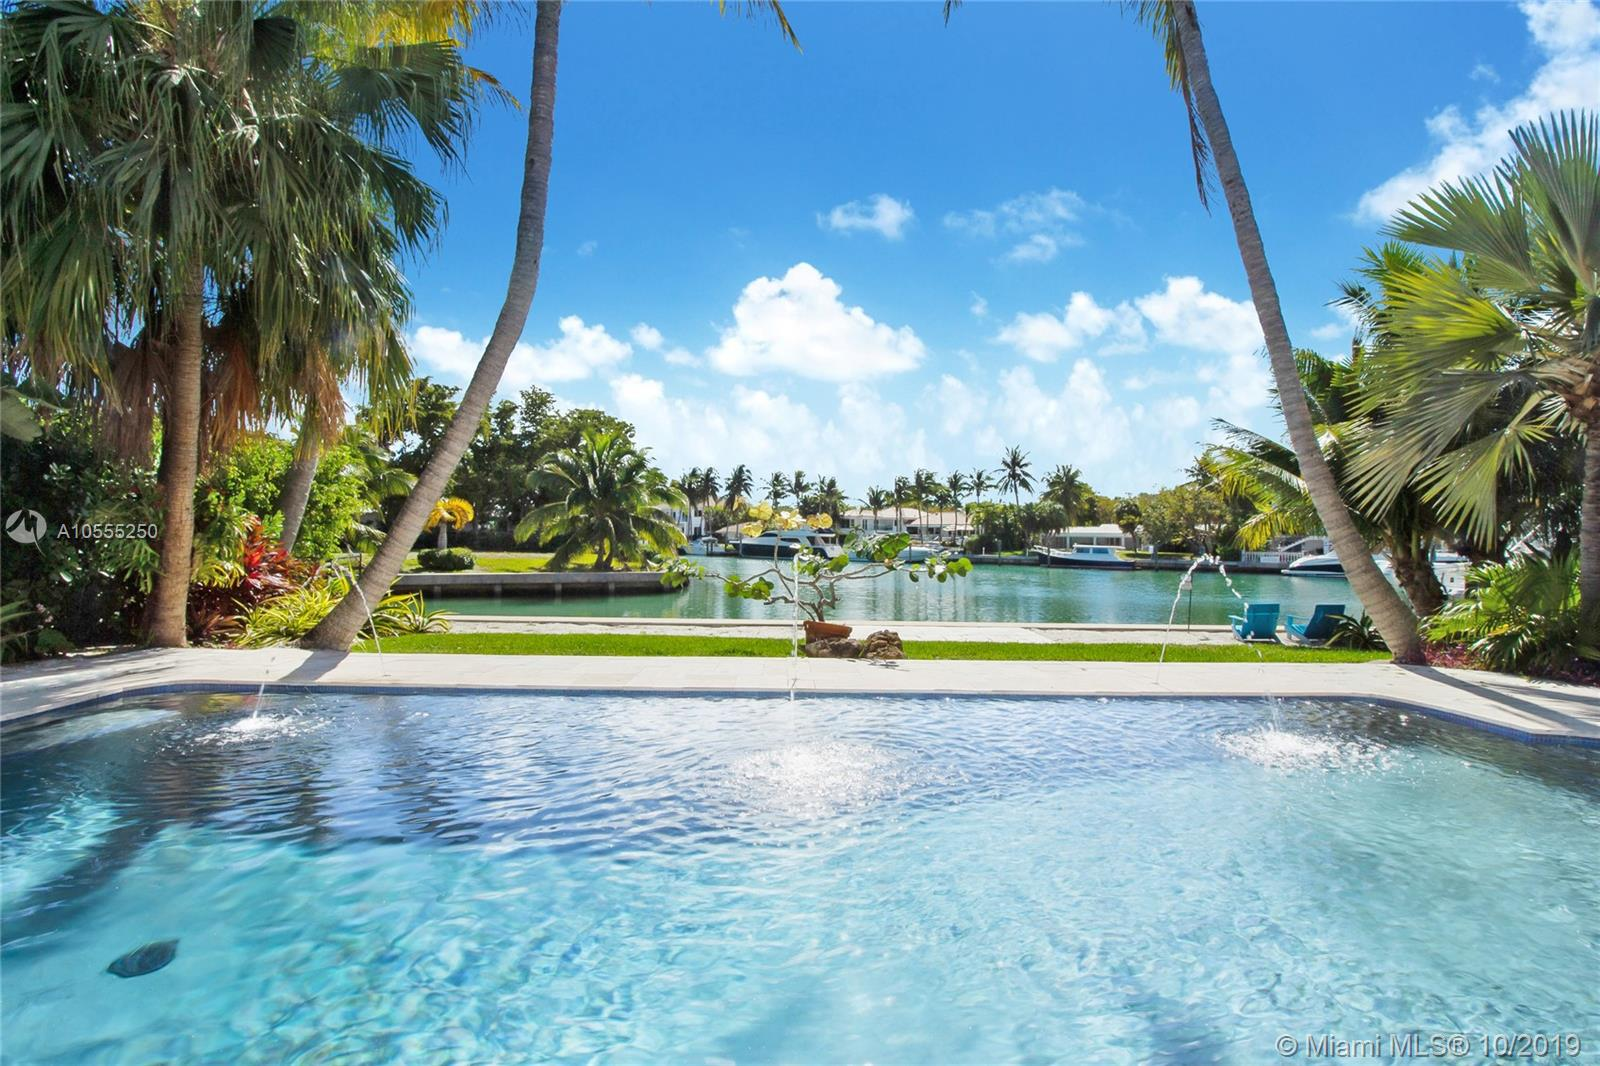 Waterfront House Being Sold For Land Value. House Is Not Elevated To Code. Lot Is 80 X 160, With 80 Feet On The Water. Seawall Is New. Pool Has Been Recently Remodeled. Roof Is 3 Years Old. Beautiful Water View Of The End Of The Canal, Where The Canal Widens And Opens Up. Beautiful Mature Coconut Palms Frame The View.Easy And Quick Access To Biscayne Bay And The Ocean. Please Call Owner-Agent, Peter Warner, For An Appointment.